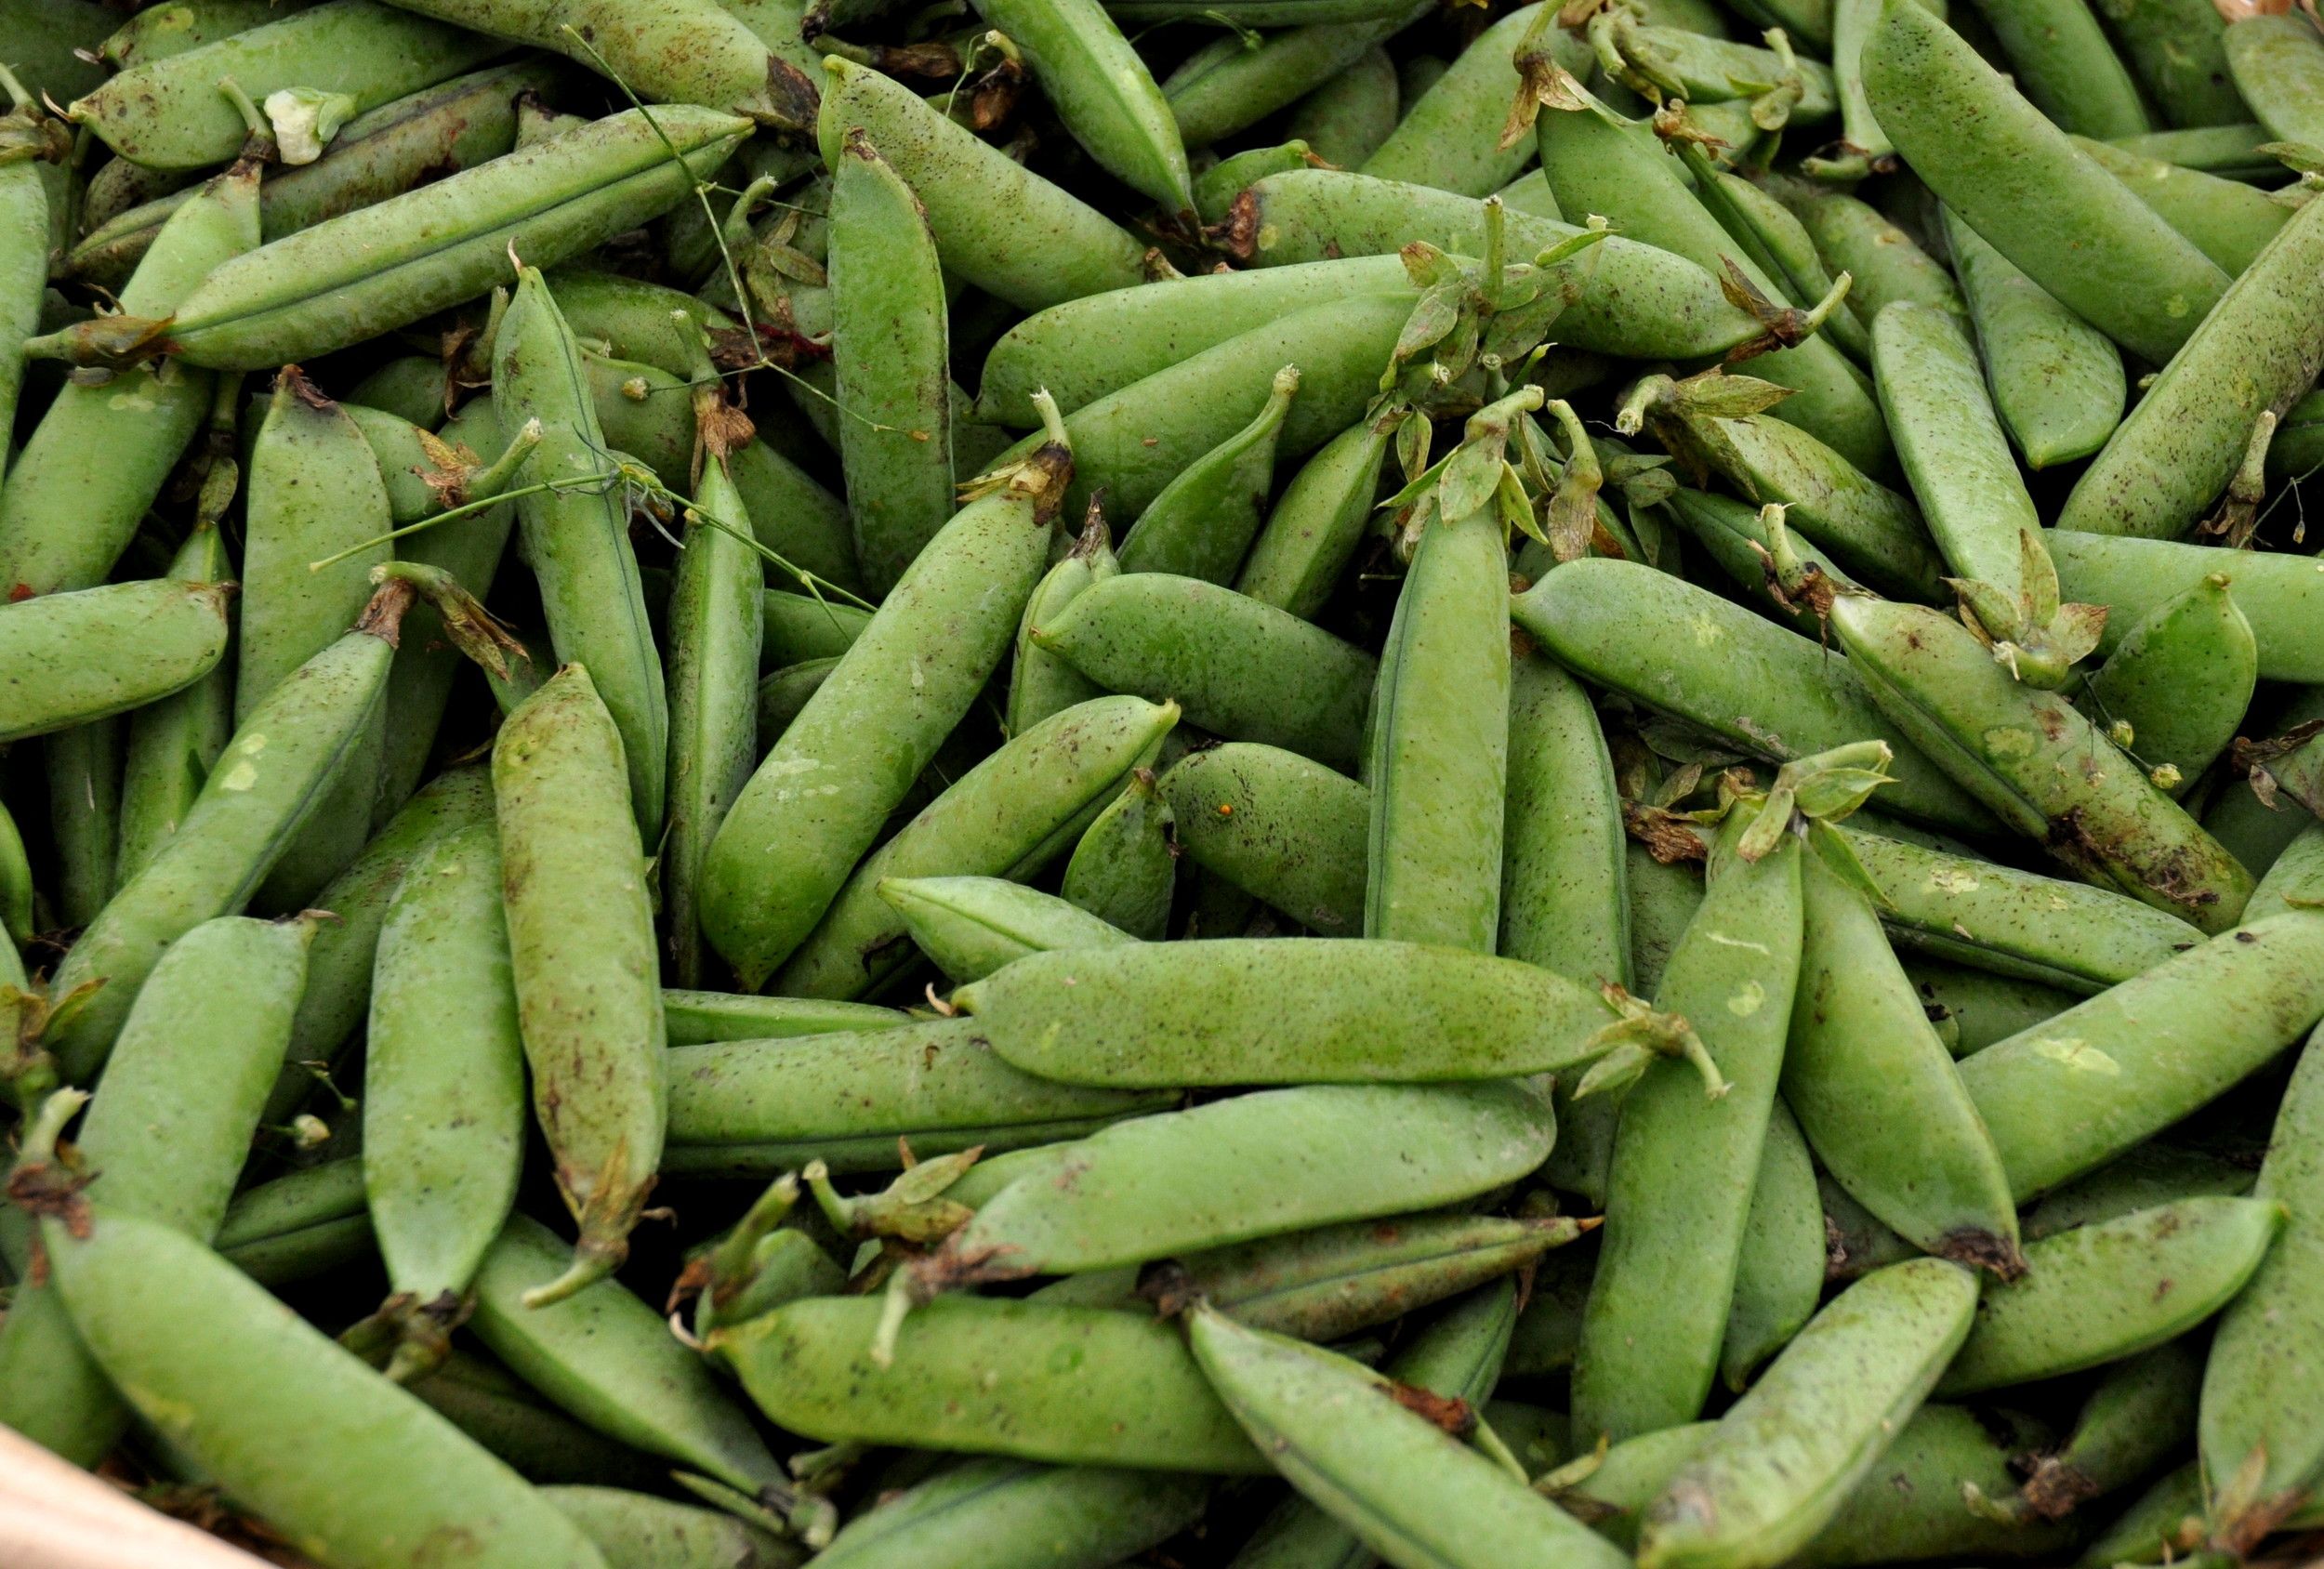 English shelling peas from Growing Things Farm at your Ballard Farmers Market. Copyright Zachary D. Lyons.